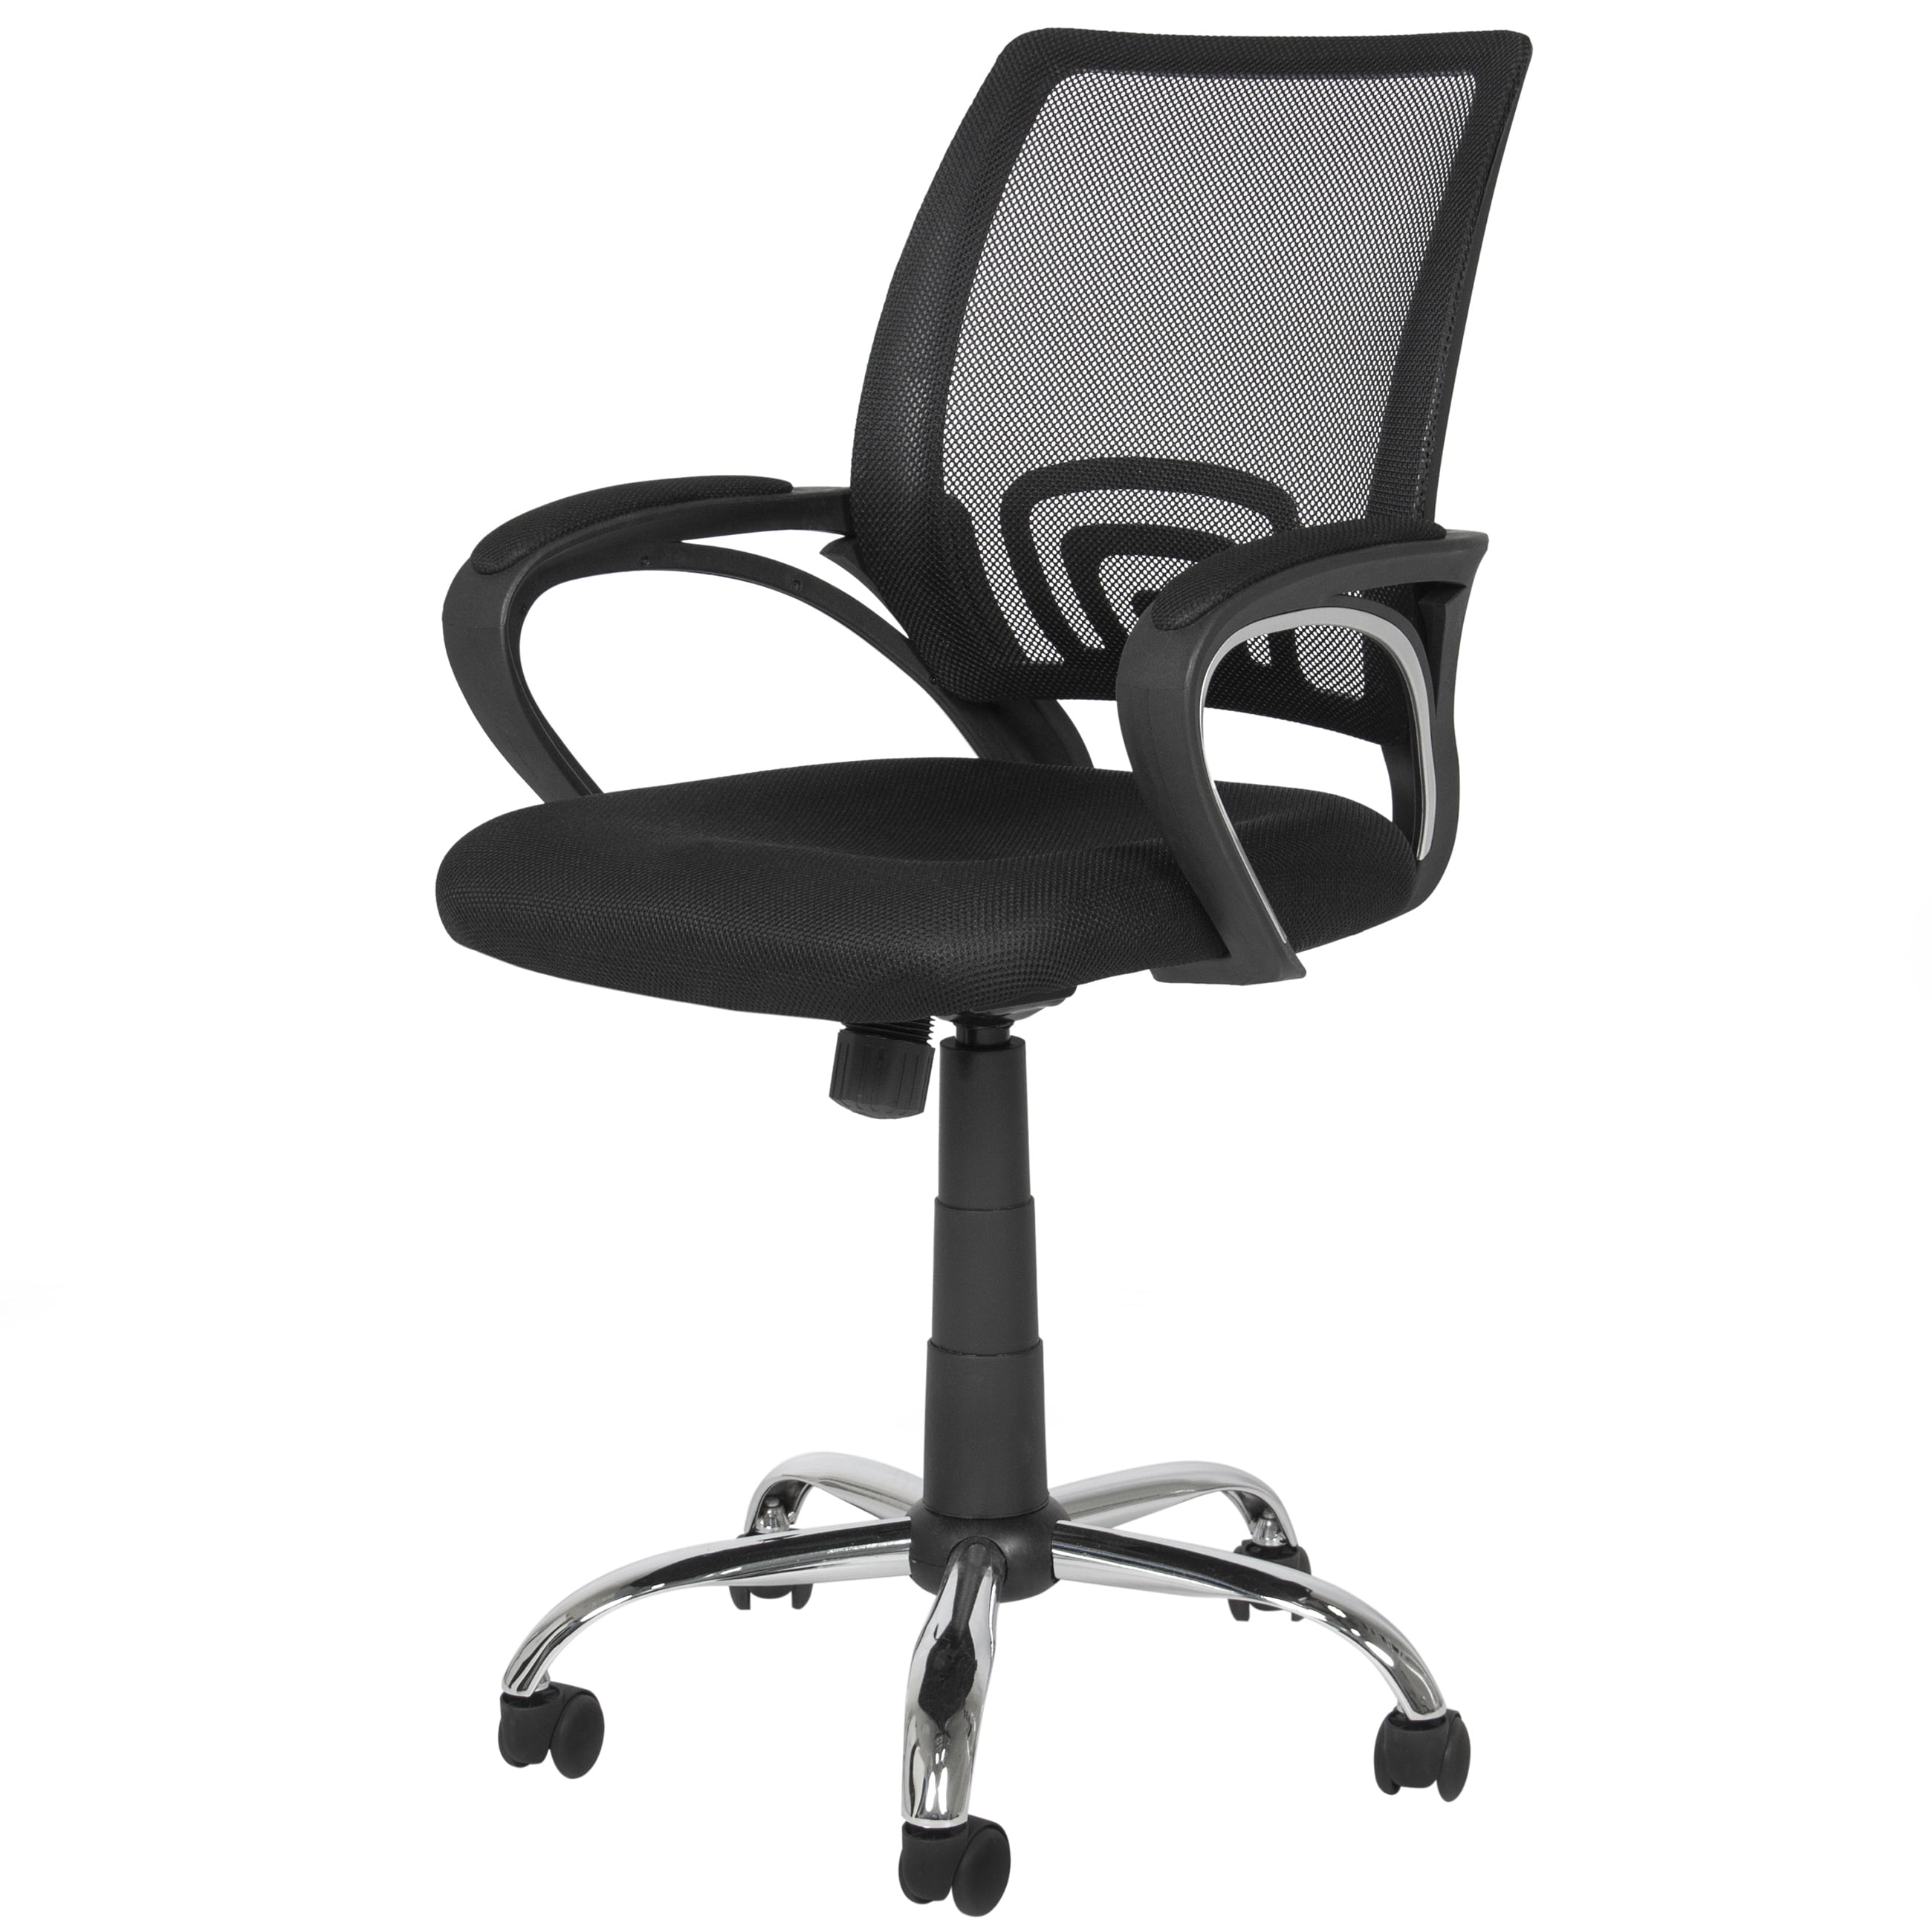 Nice Best Choice Products Ergonomic Computer Home Office Chair W/Mesh Design ( Black W Chrome Legs)   Walmart.com